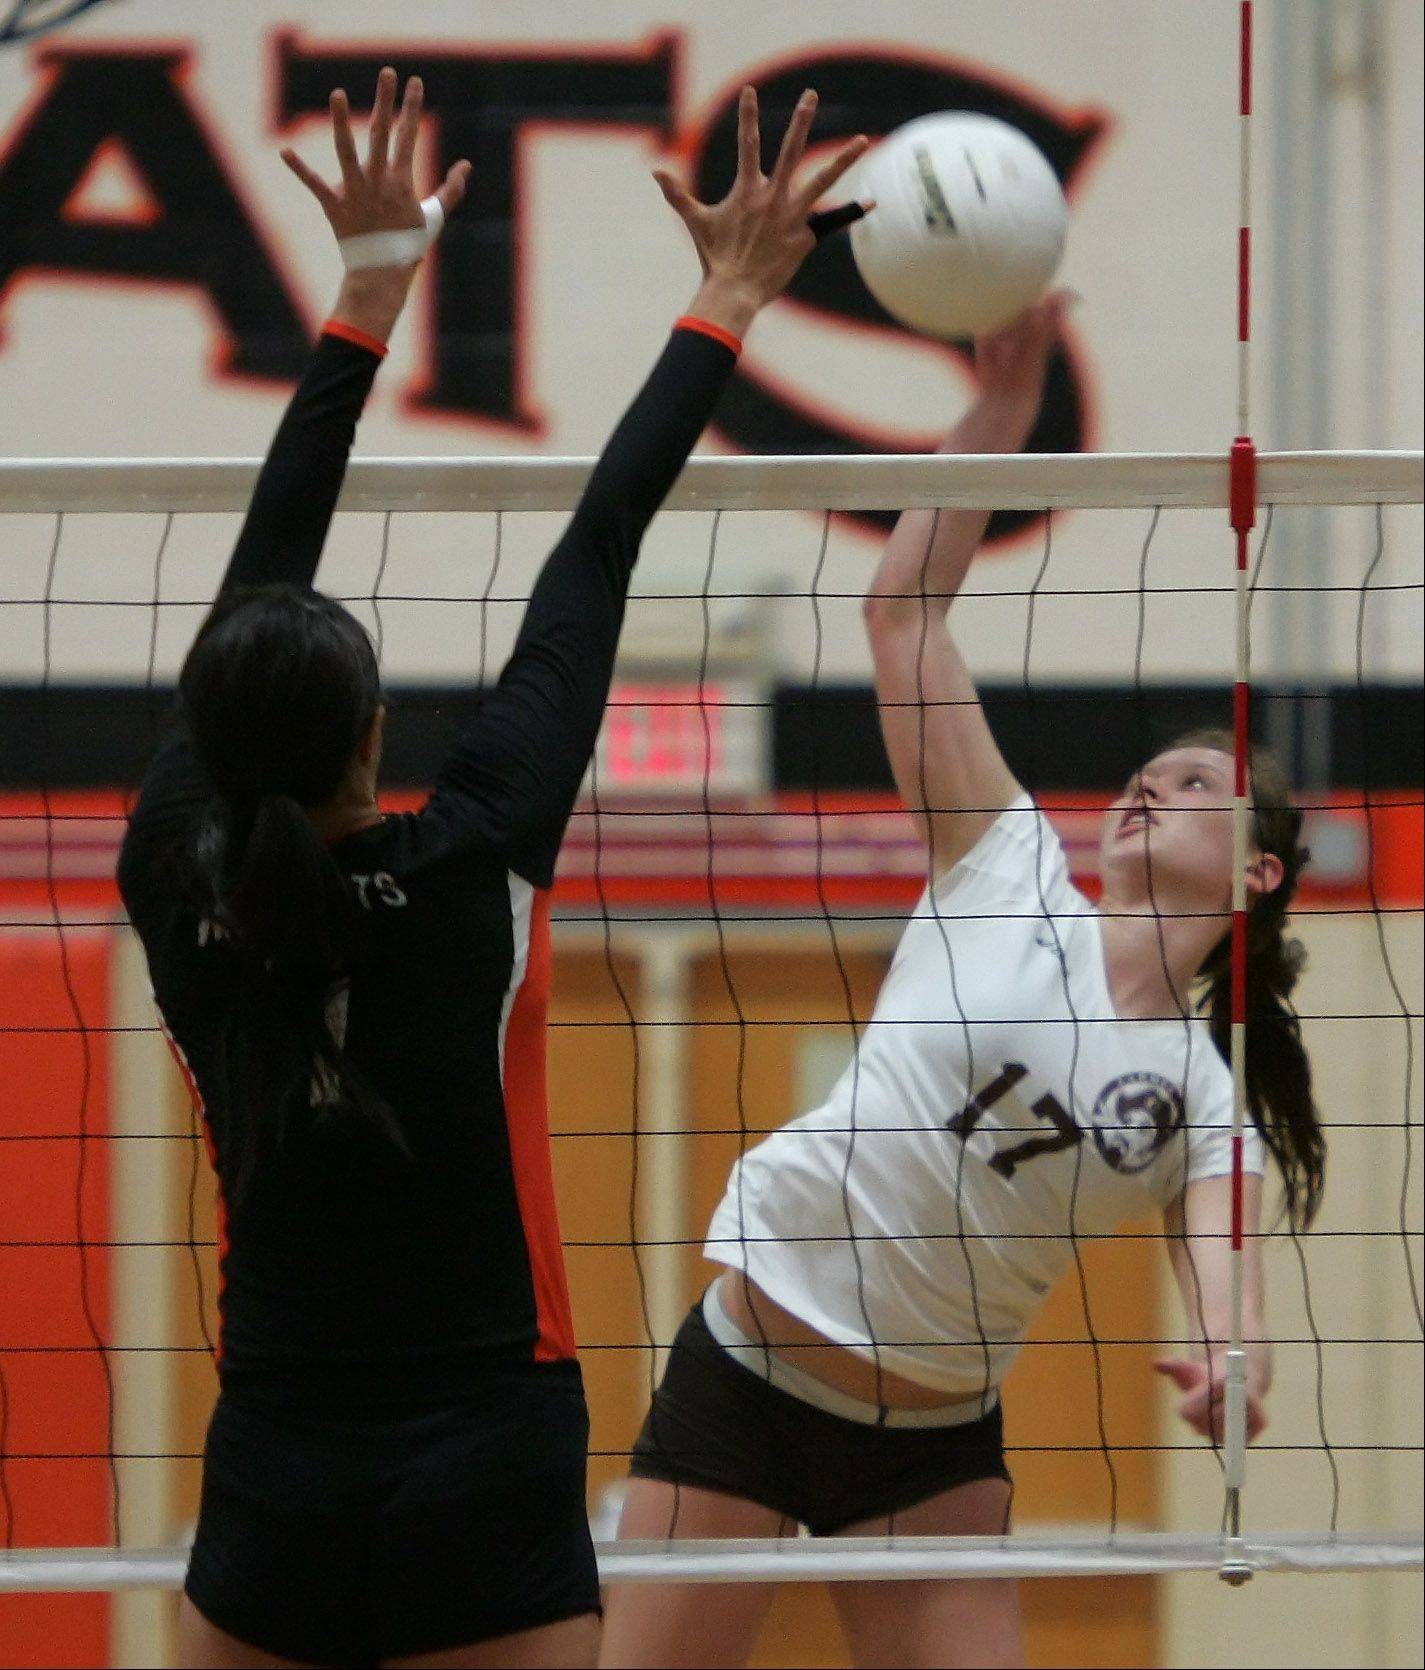 Carmel player Caitlin Barry slams the ball against Libertyville blocker Cindy Zhou on Monday at Libertyville.